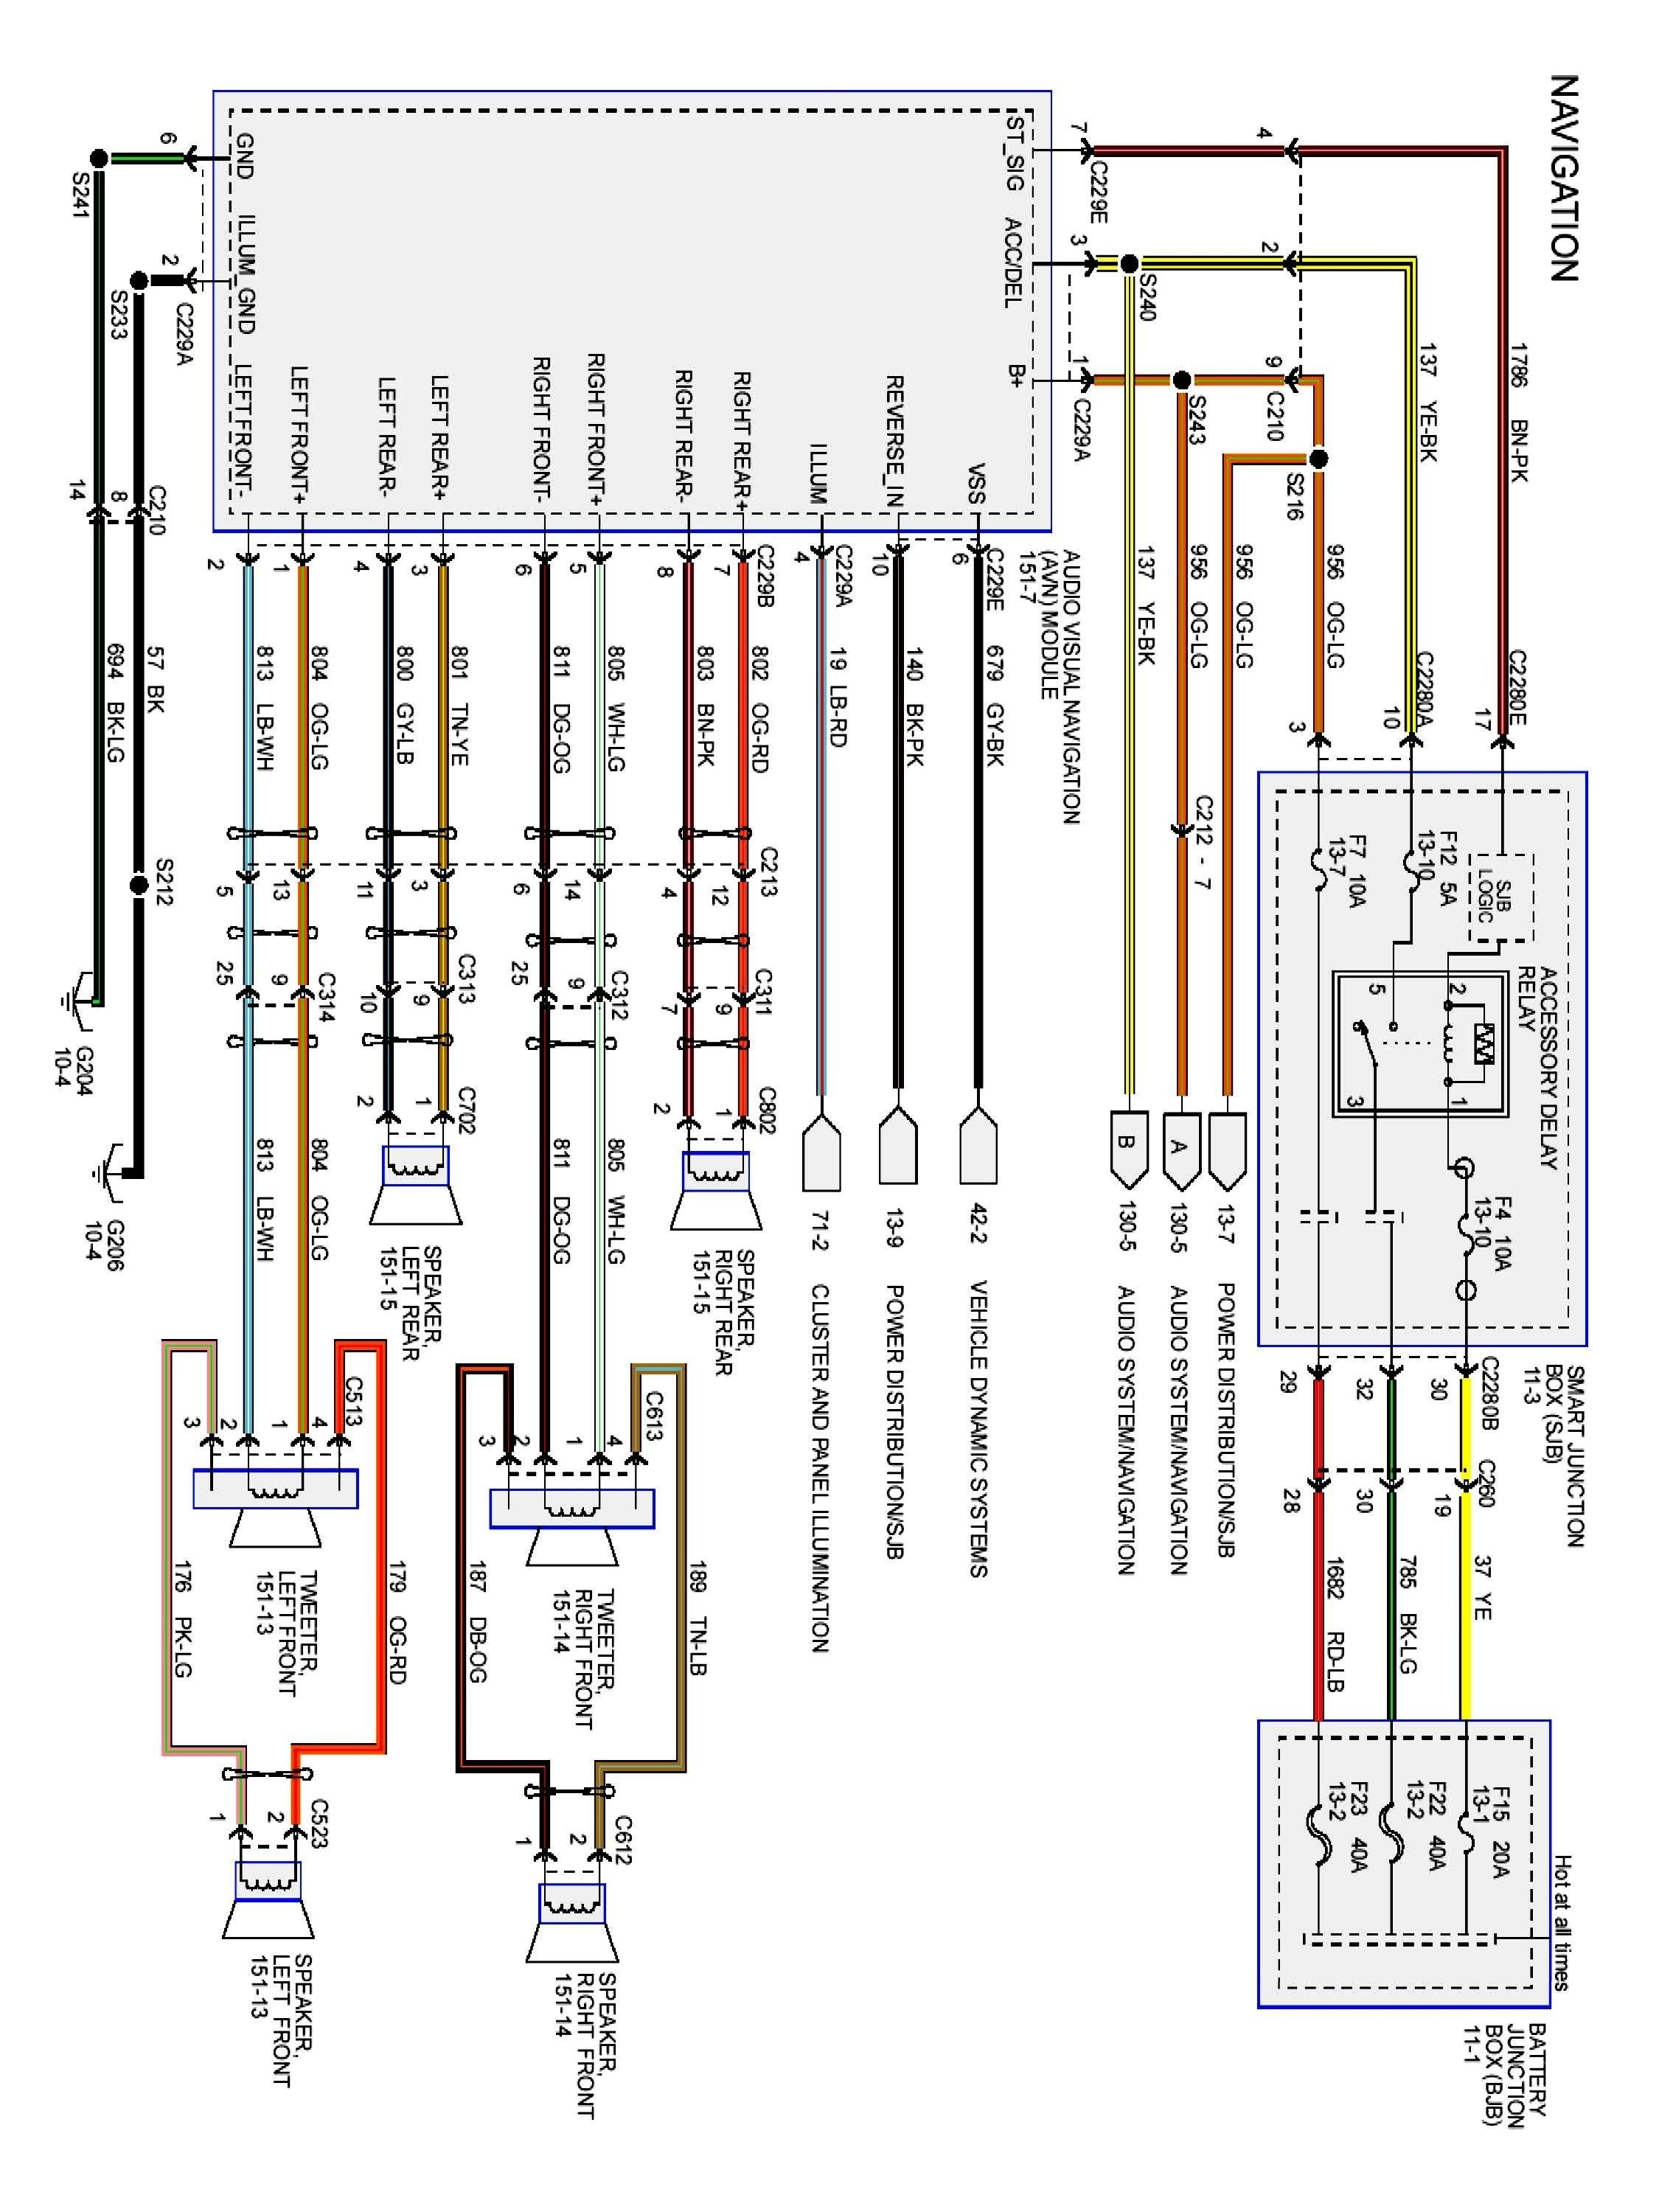 2006 Ford Fusion Engine Diagram In 2021 Ford Focus Car Ford Escape Ford Focus